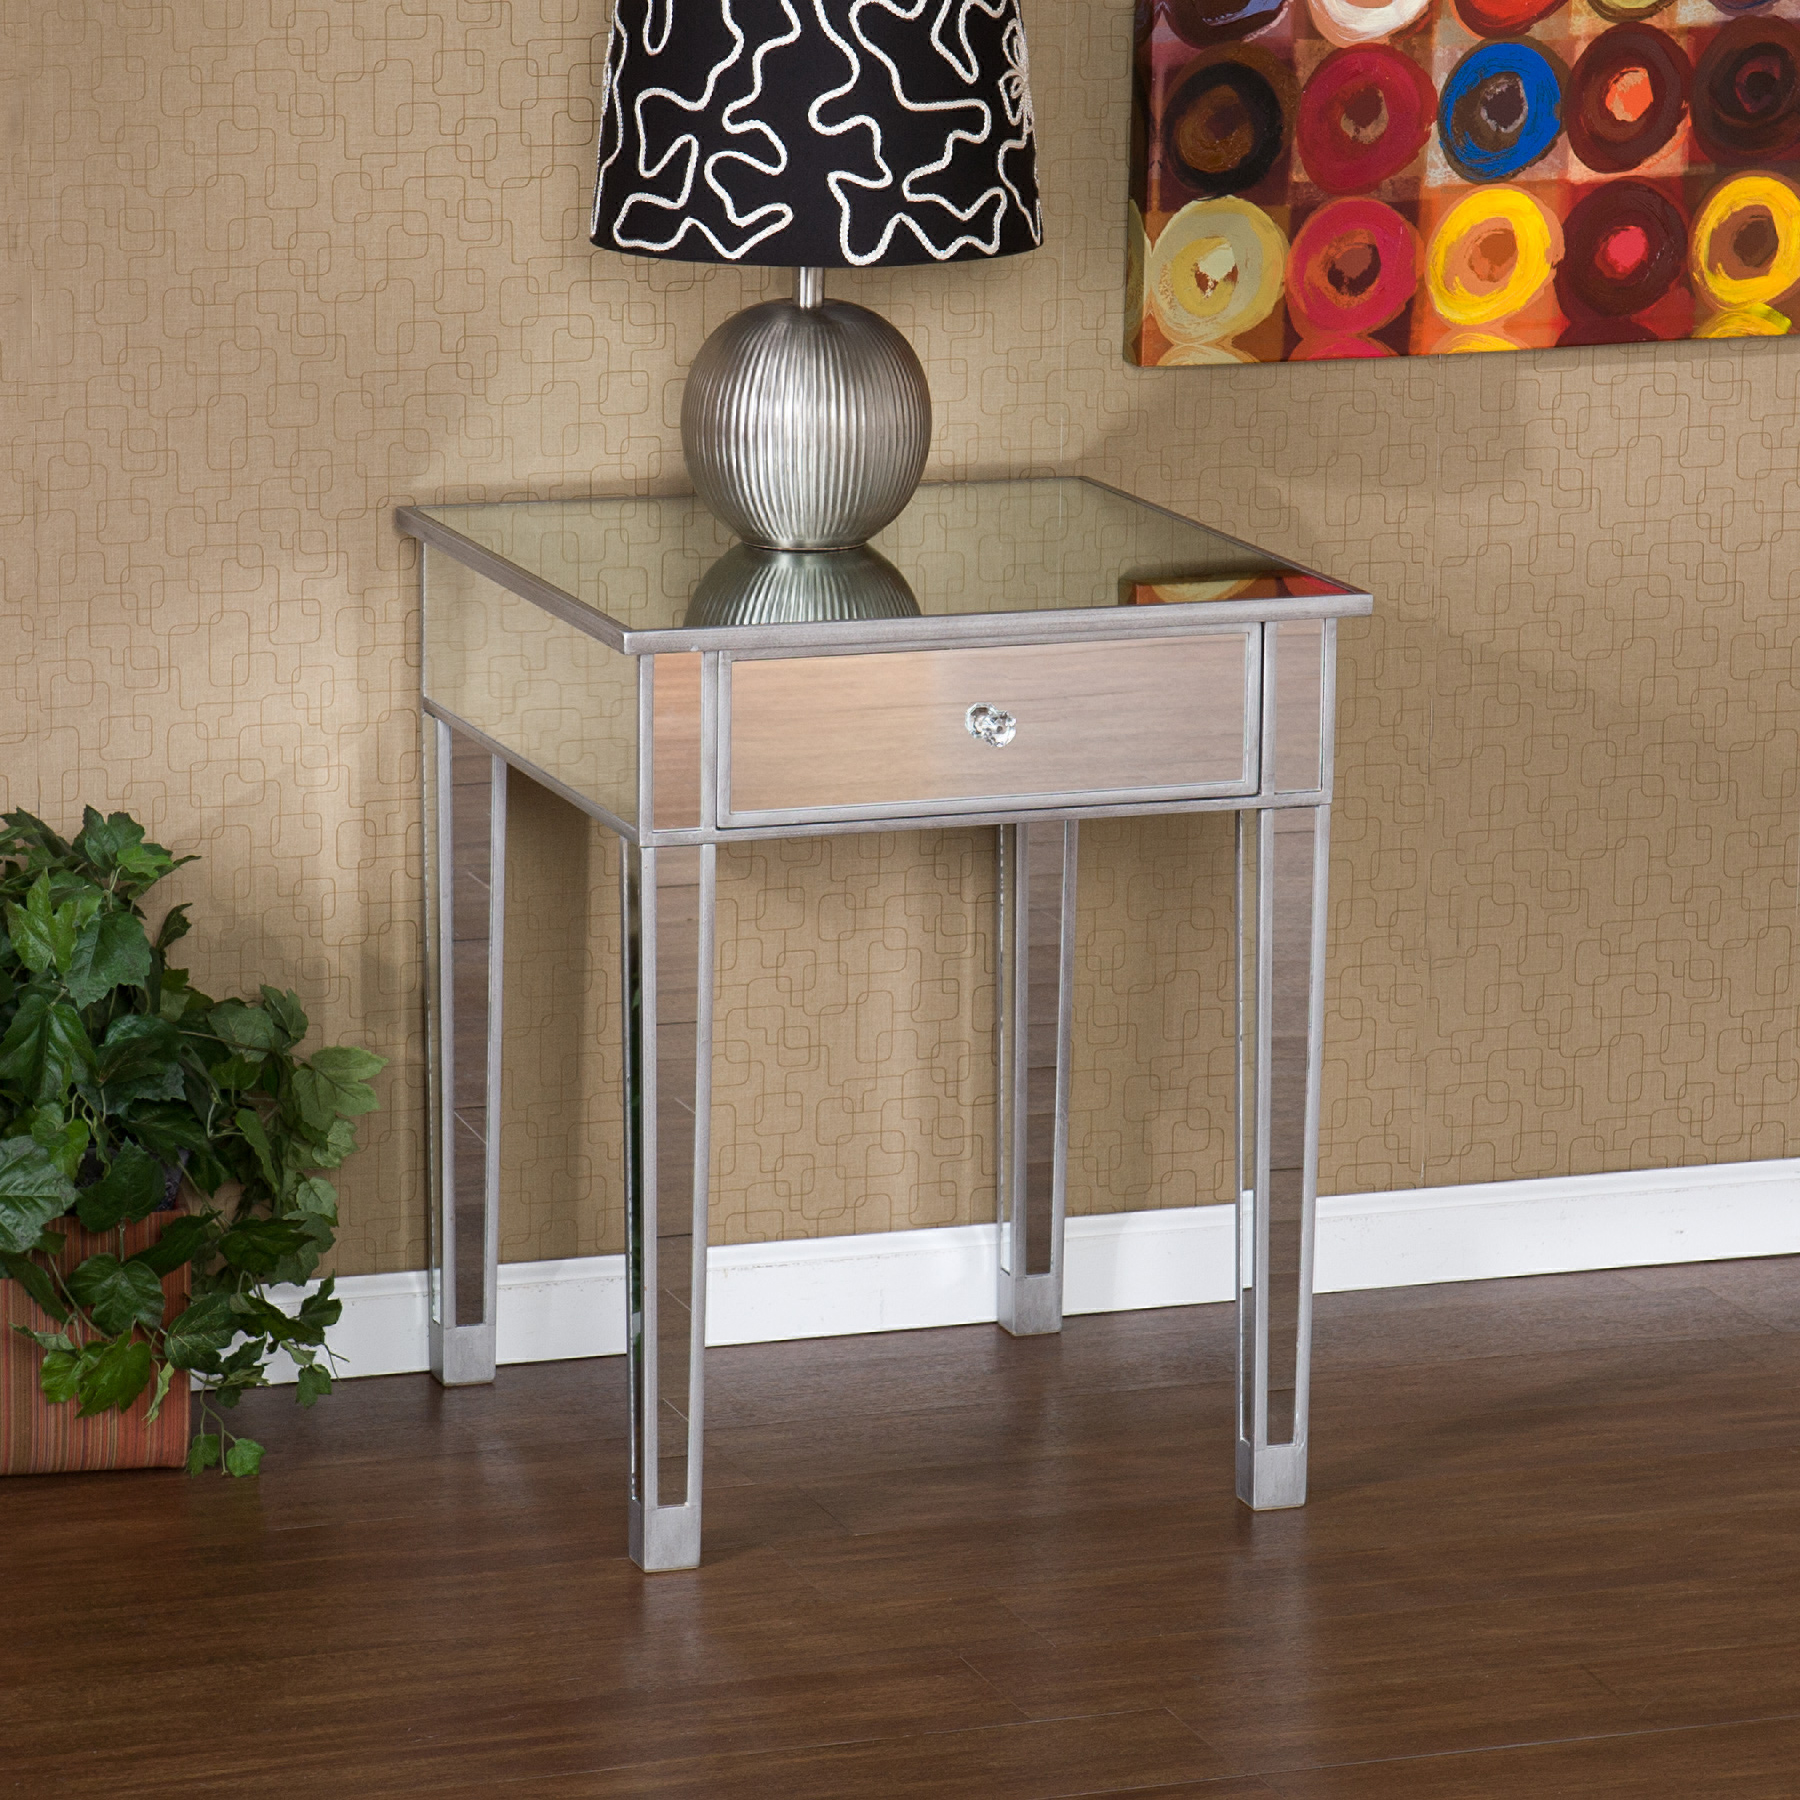 mirage mirrored accent table target small lights mosaic outdoor side berg furniture contemporary legs green stand round with folding sides trestle pedestal pier coupon code off